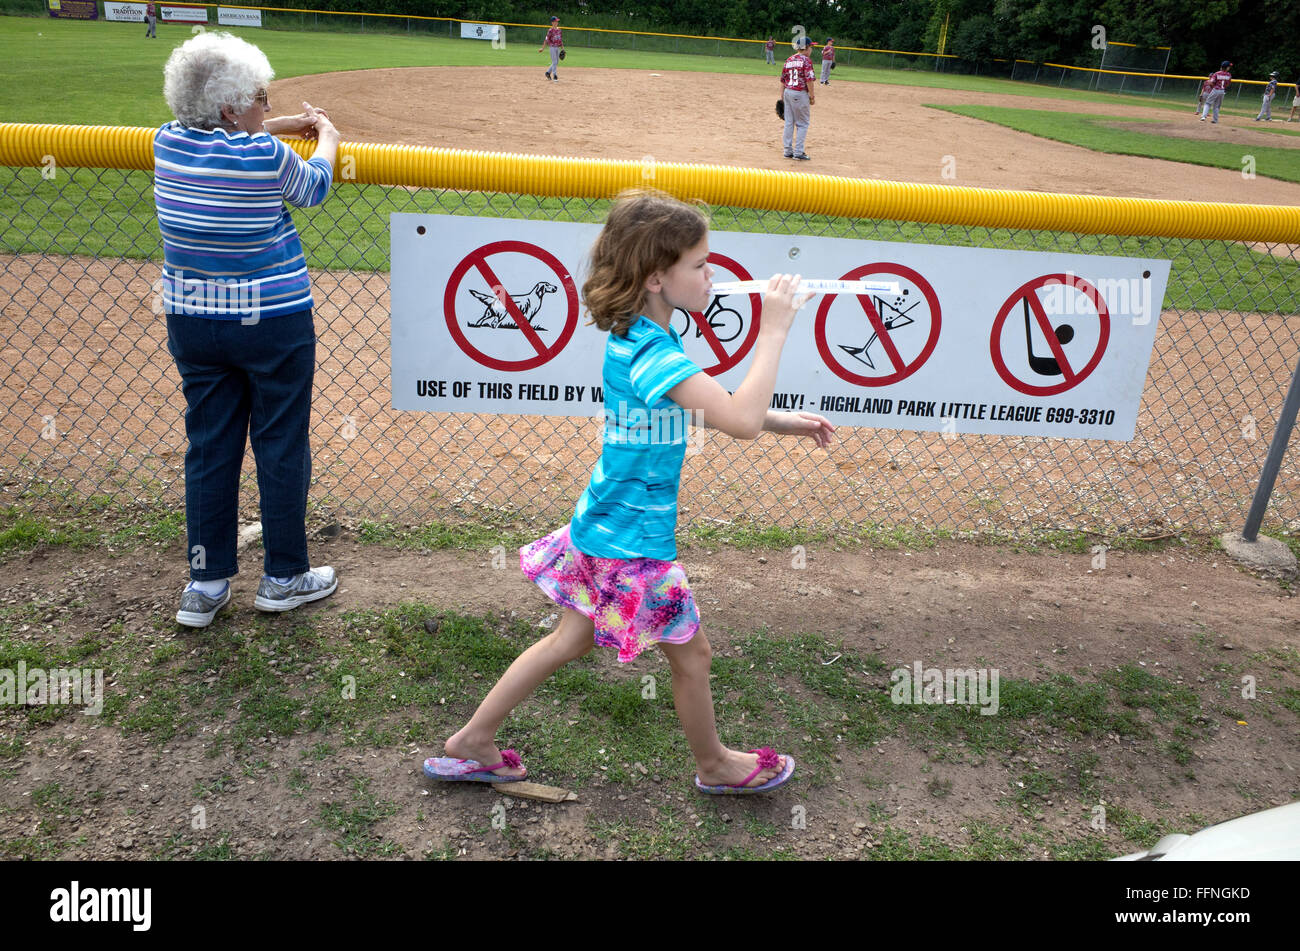 Young girl walking by ballpark warning signs eating frozen treat oblivious to game in progress. St Paul Minnesota - Stock Image